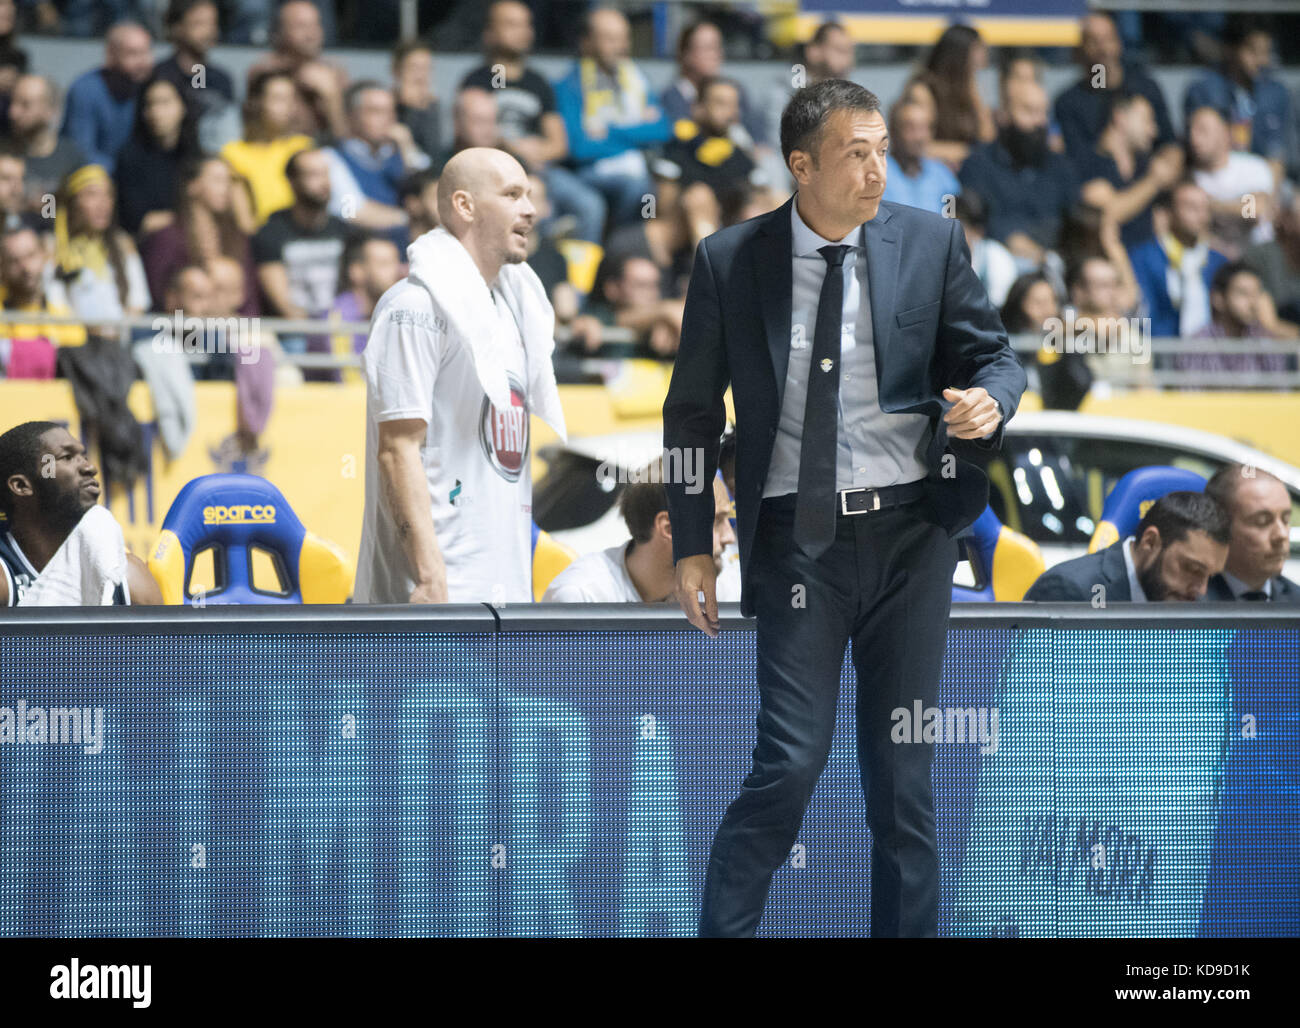 Turin, Italy 7th october 2017. The head coach Luca Banchi during the Serie A Basketball match Fiat Torino Auxilium Stock Photo